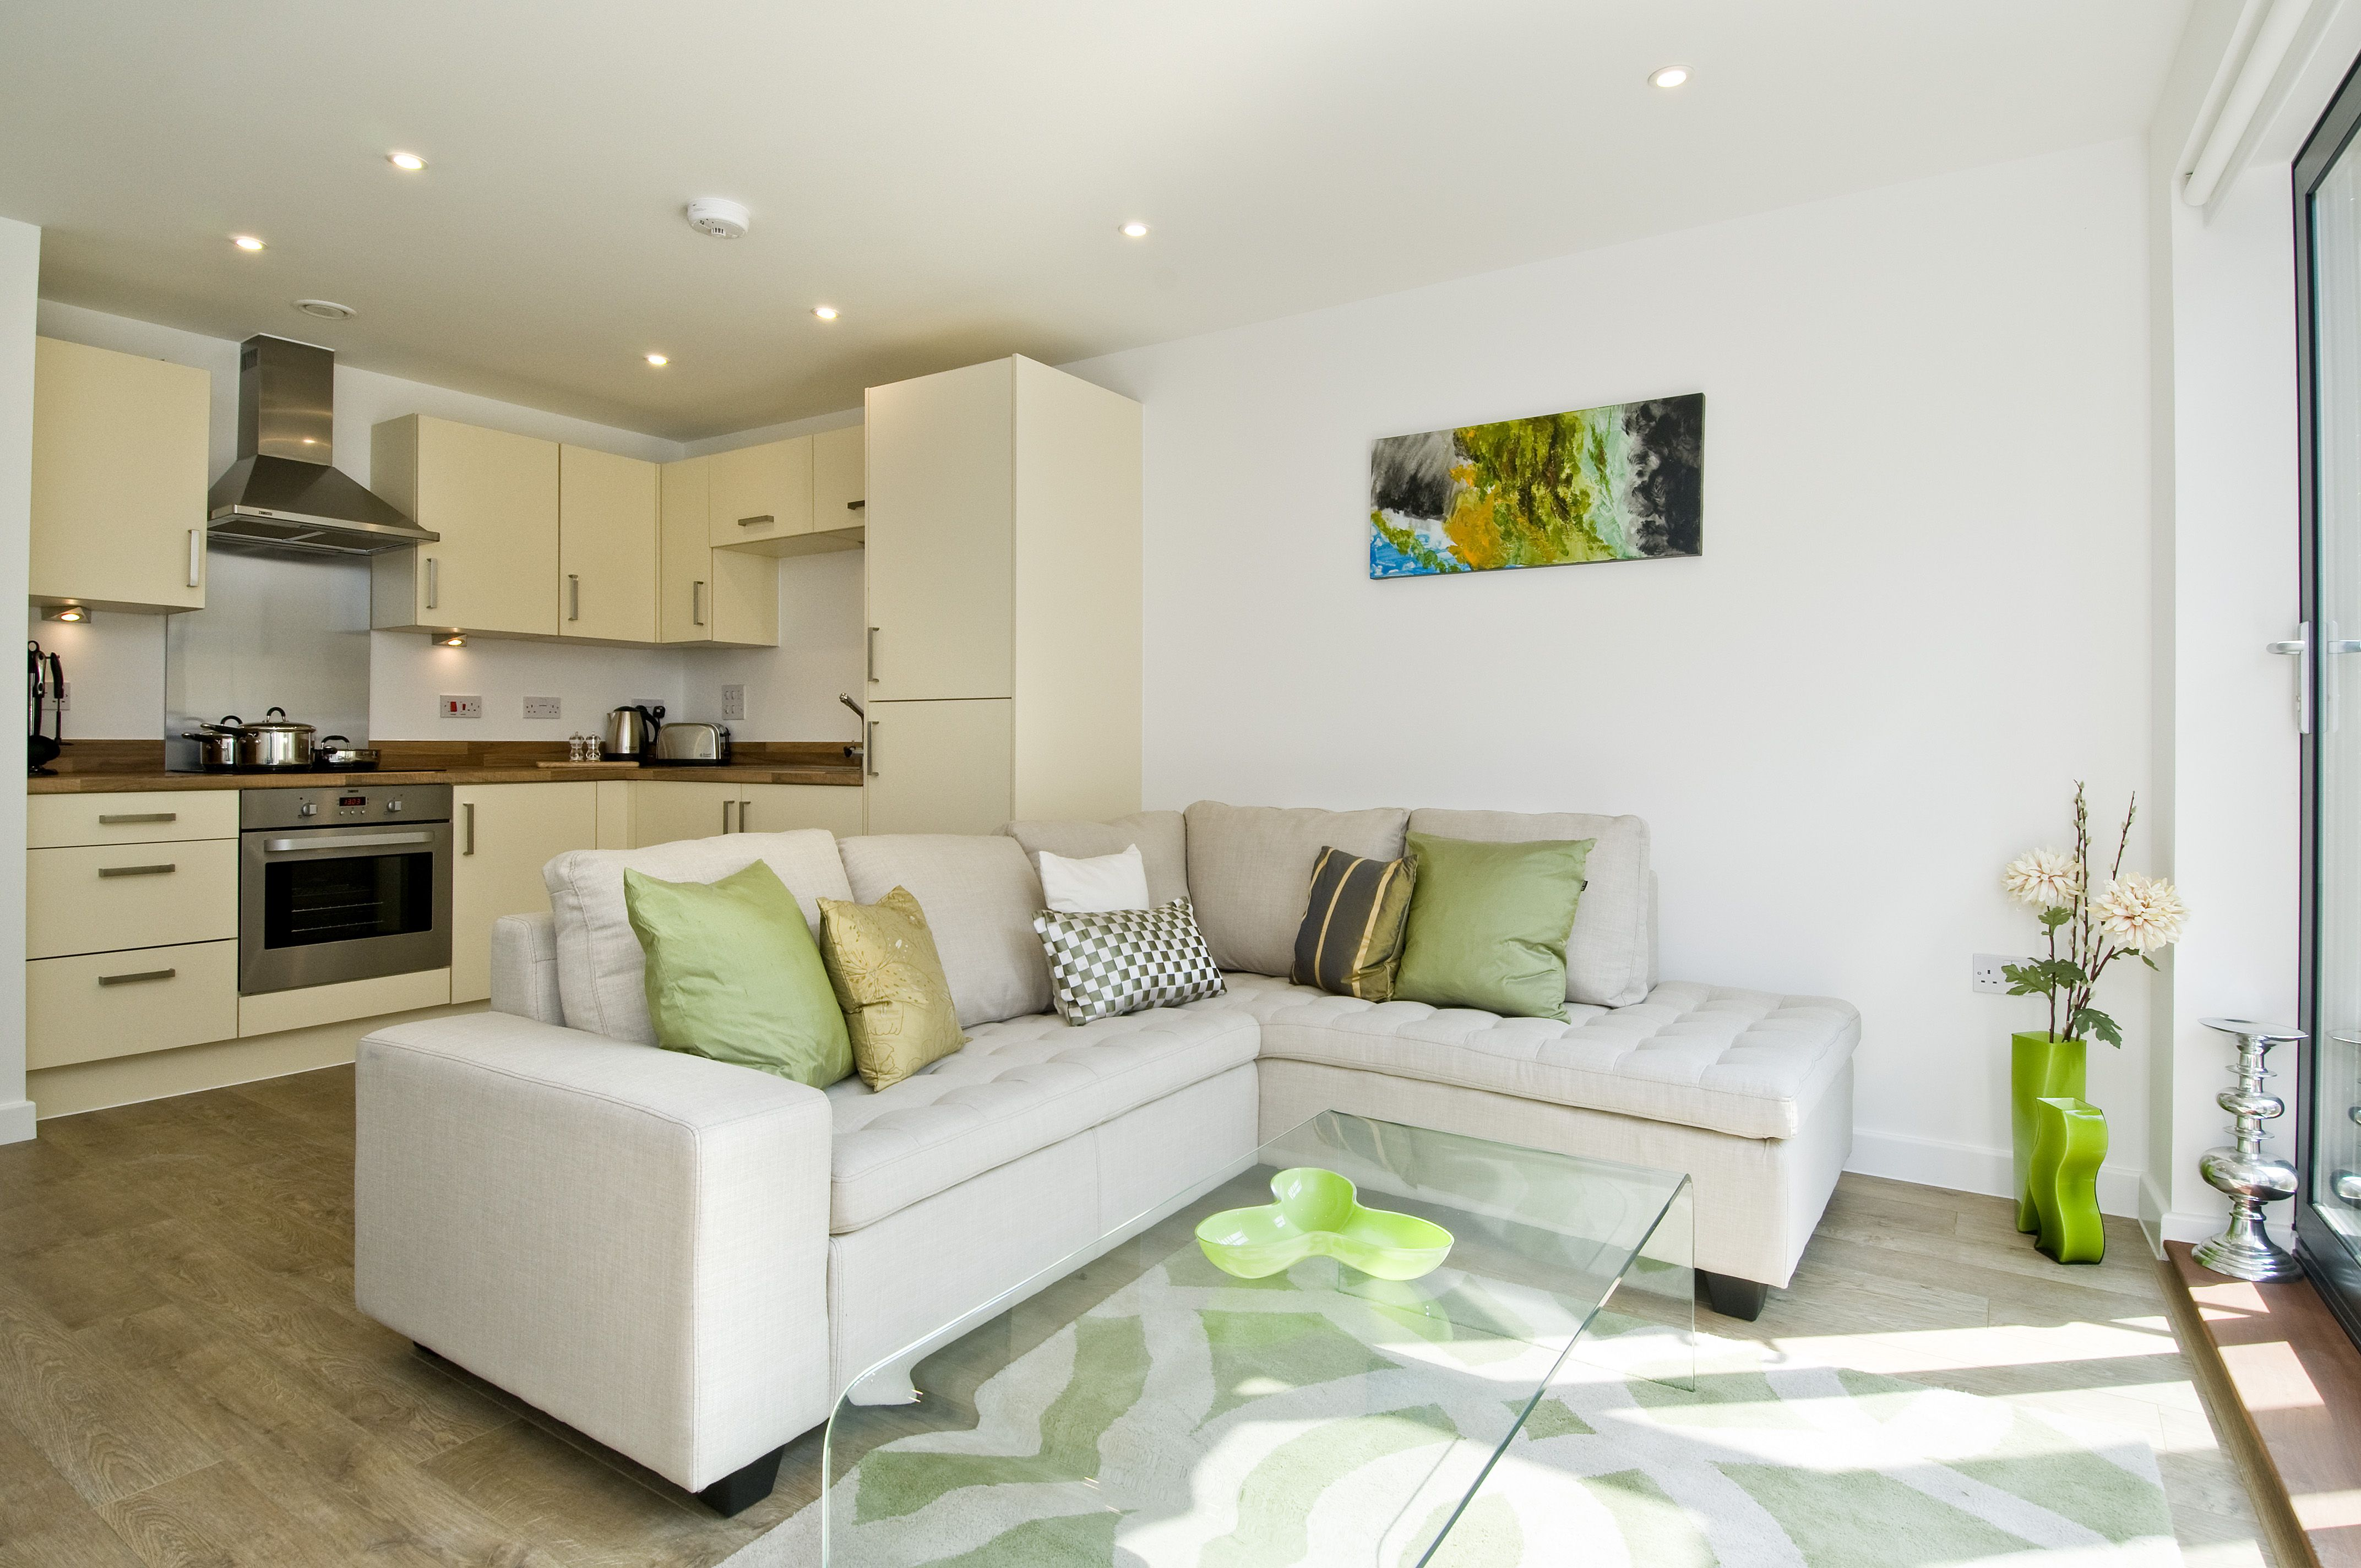 Enhancing Your Property's Appeal Furnishing Packs can